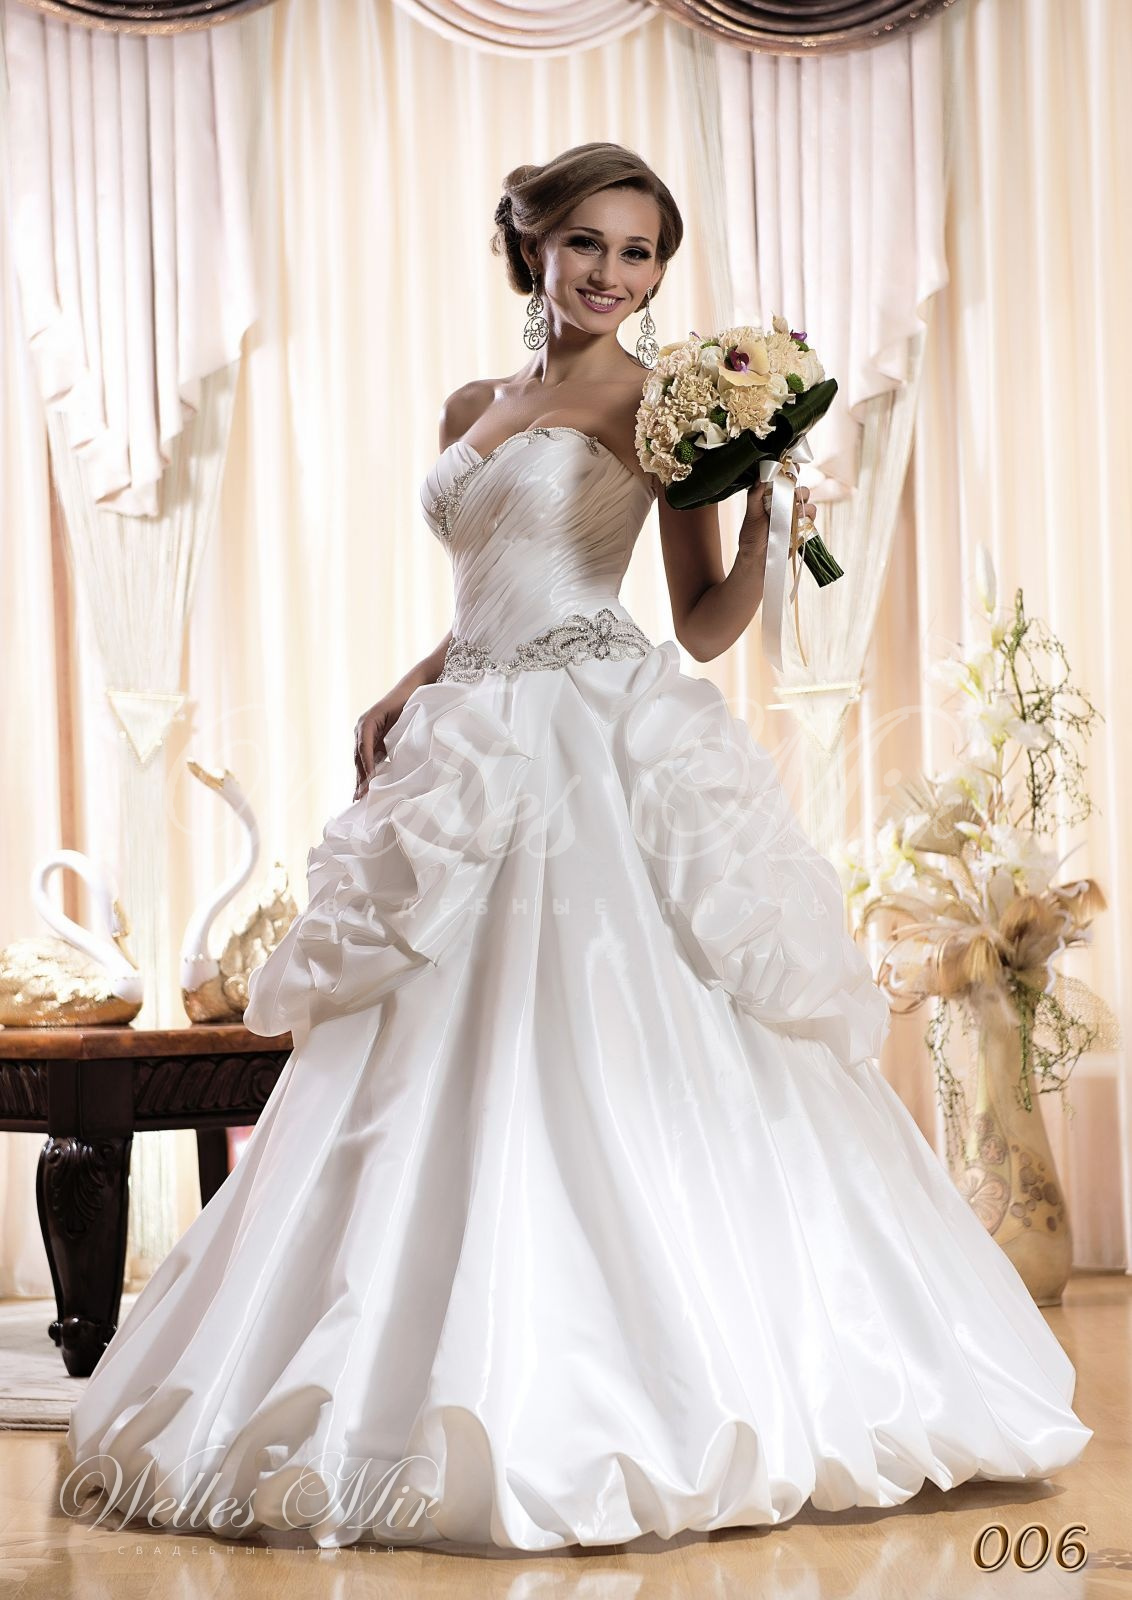 Wedding dresses 006